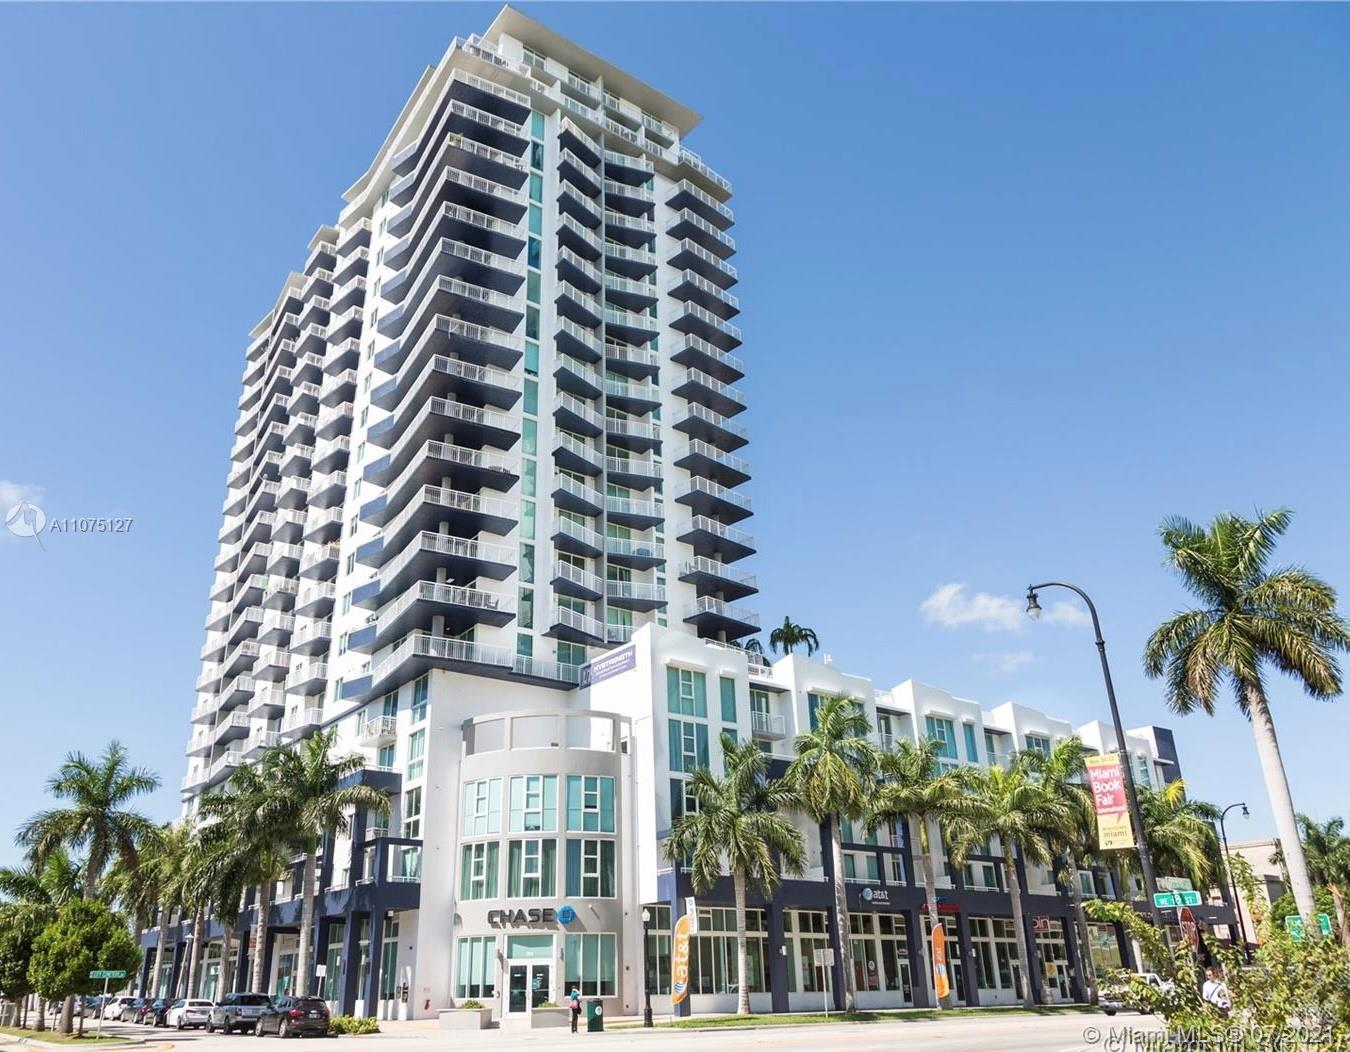 SPECTACULAR 3 BED - 2 BATH- 1305 Sq Ft - 2006 Building - 11 floor - Corner Unit- Best line in the building with wraparound balcony views of Biscayne Bay. Located in the new hot area Edgewater. Building has concierge, 24 hour security, renovated gym, social room, Swimming pool, Jacuzzi, and more amenities. Close to the Performance Arts, walking distance to American Airlines Arena and Bayside.  Publix across the street. Two assigned cover parking spots. Swimming pool, Jacuzzi, Gym and more amenities.